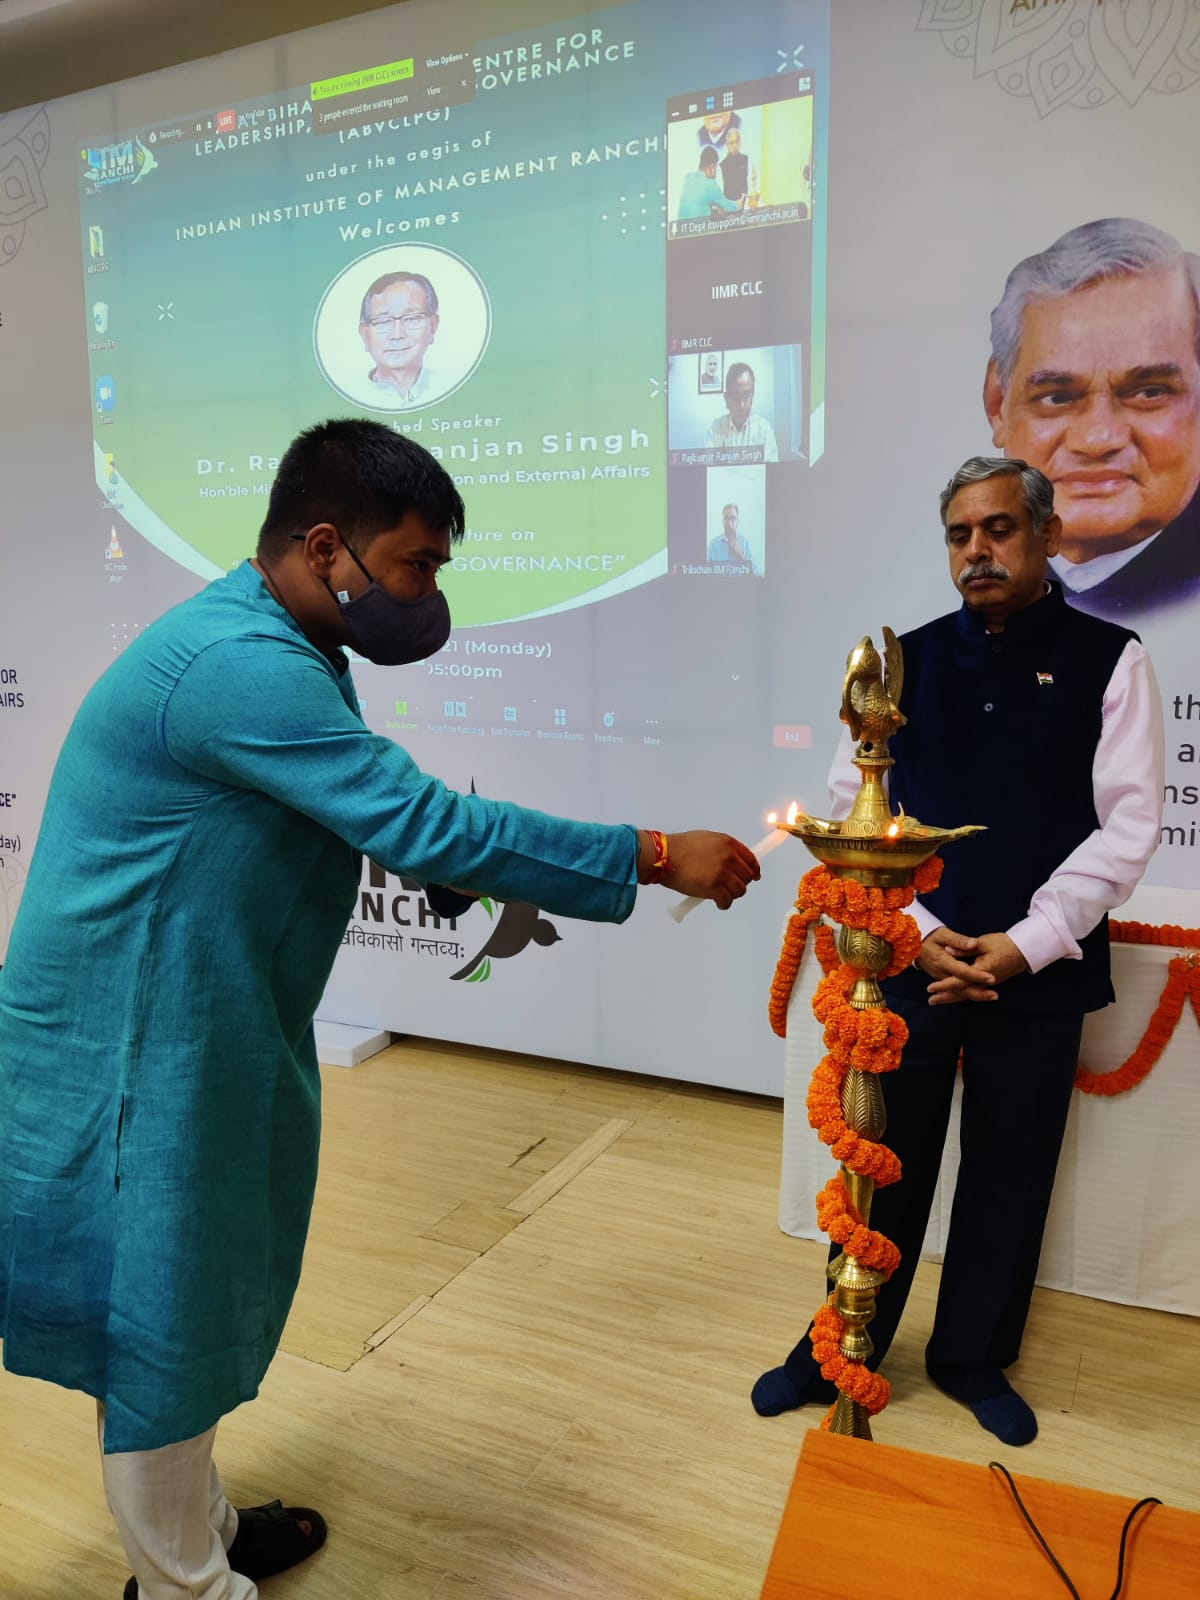 3rd Anniversary ABVCLPG Lecture by Dr. Rajkumar Ranjan Singh- Hon'ble Minister of State for Education & External Affairs